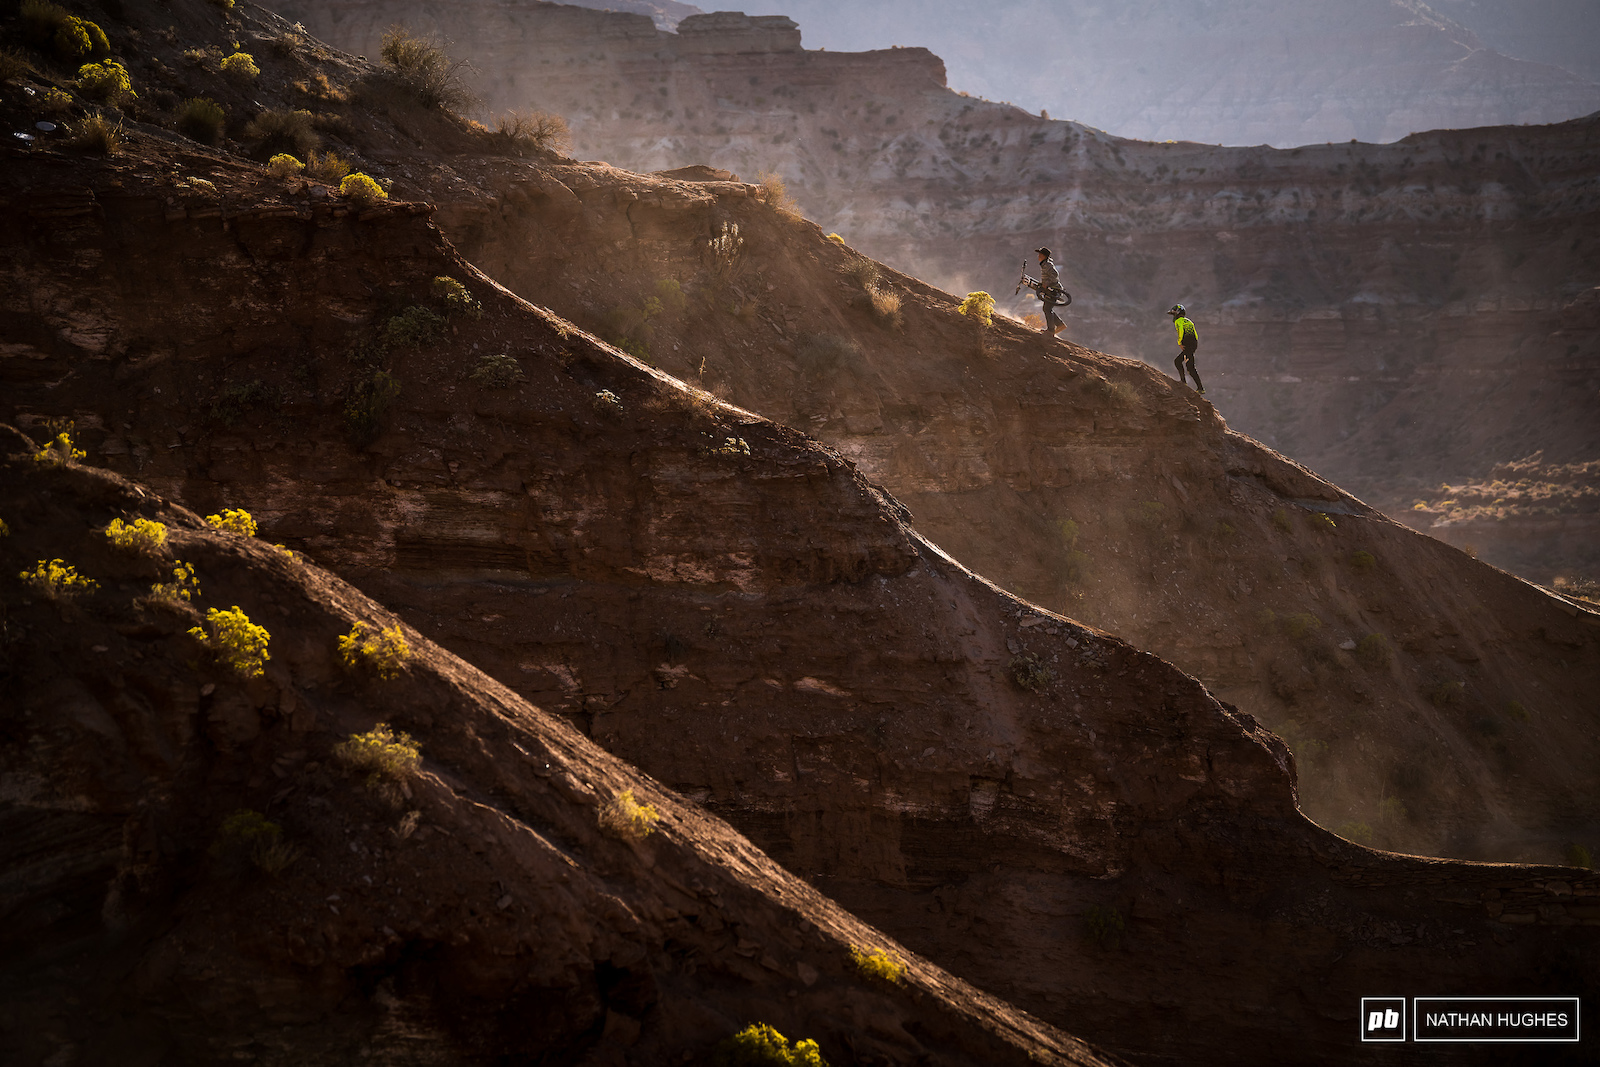 MTB giant Cam Zink dwarfed by Utah the magnificence.